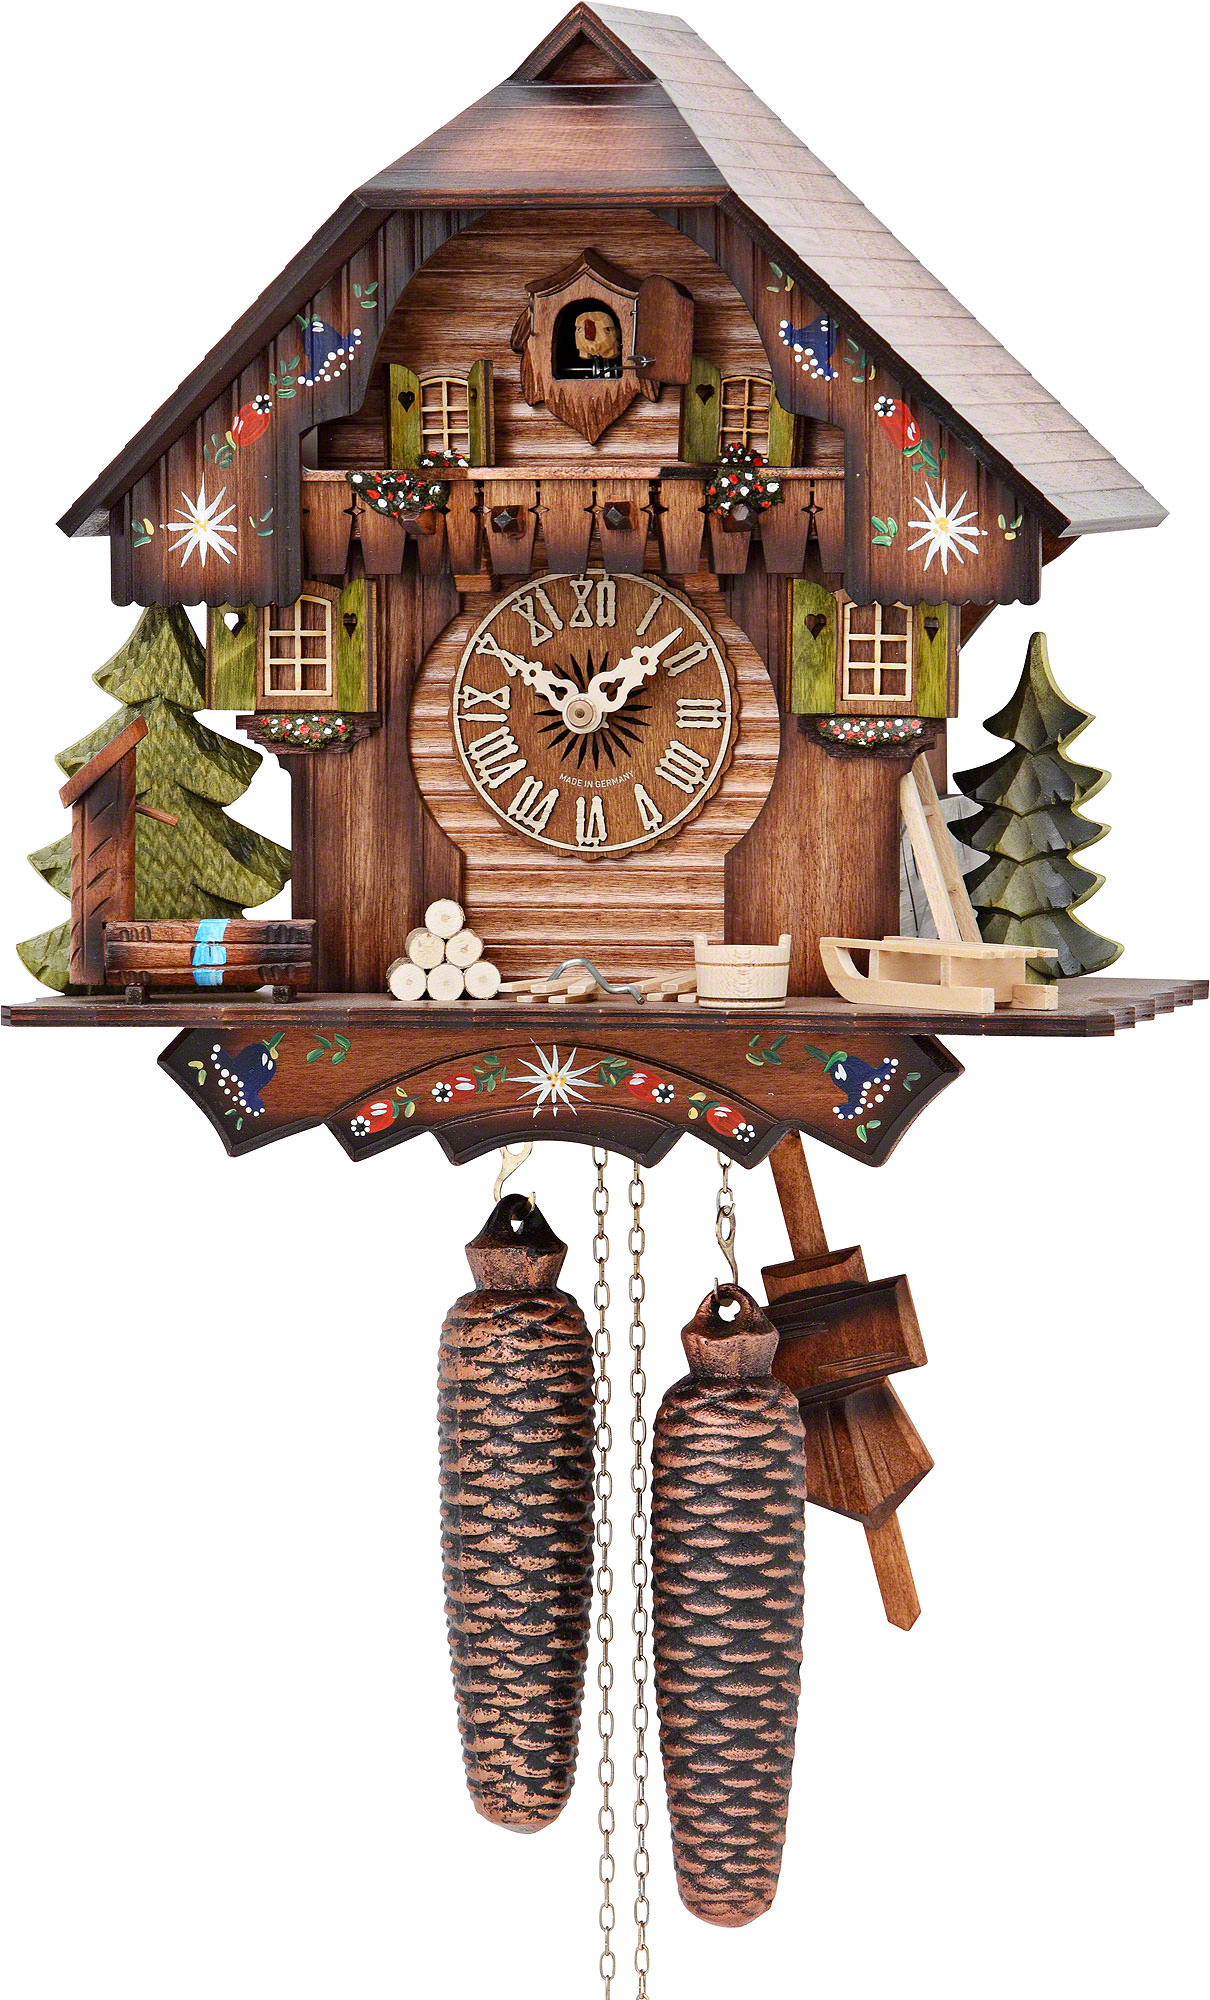 Cuckoo Clock 8-day-movement Chalet-Style 30cm by Hekas - 031876